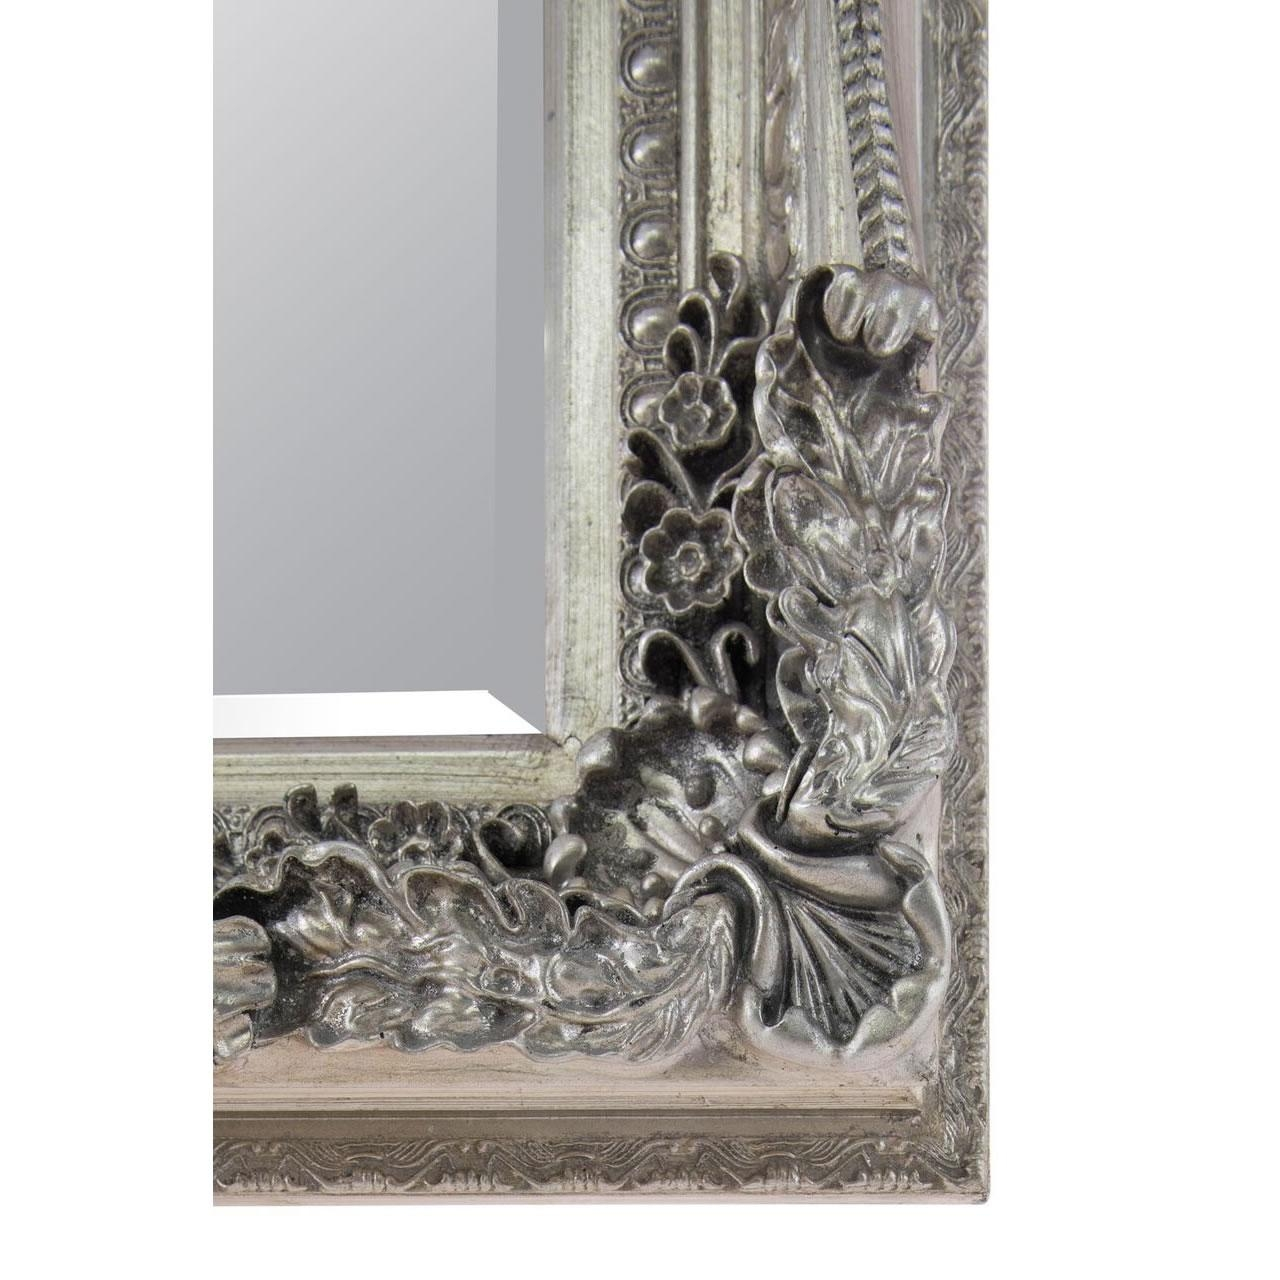 Carved Louise Large Silver Ornate Wall Mirror Intended For Silver Ornate Wall Mirror (Image 5 of 20)